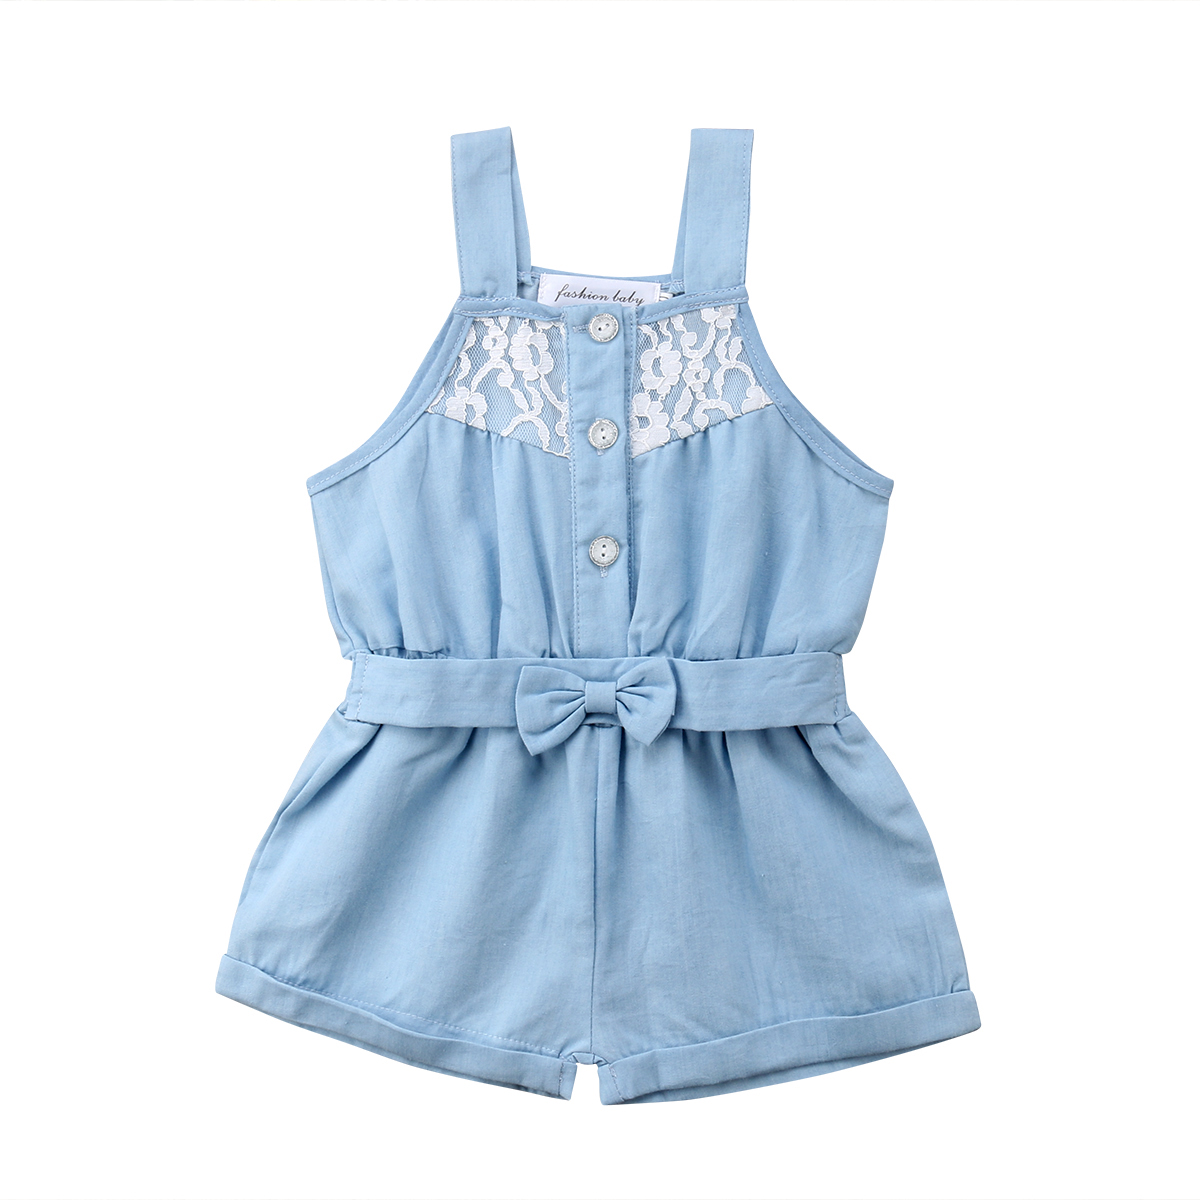 Analytical Newborn Kids Baby Girl Lace Romper Jumpsuit Playsuit Bownot Denim Clothes Outfits Summer Stylish Girl Clothing Overalls